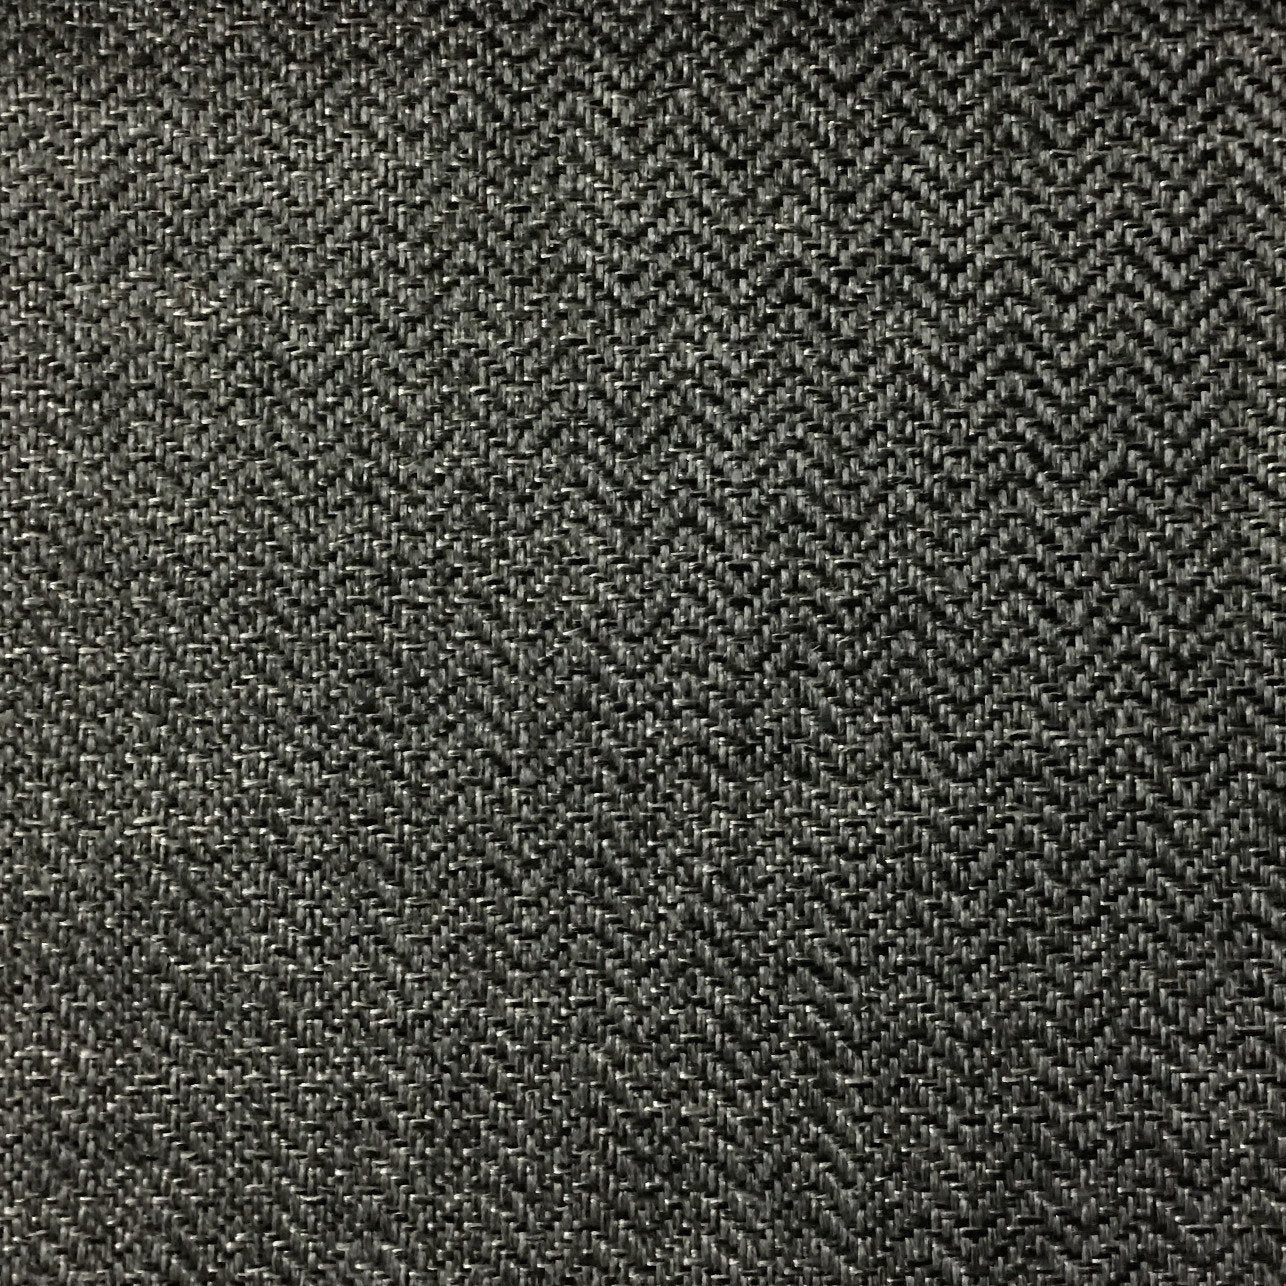 Devon - Chevron Pattern Multipurpose Upholstery Fabric by the Yard